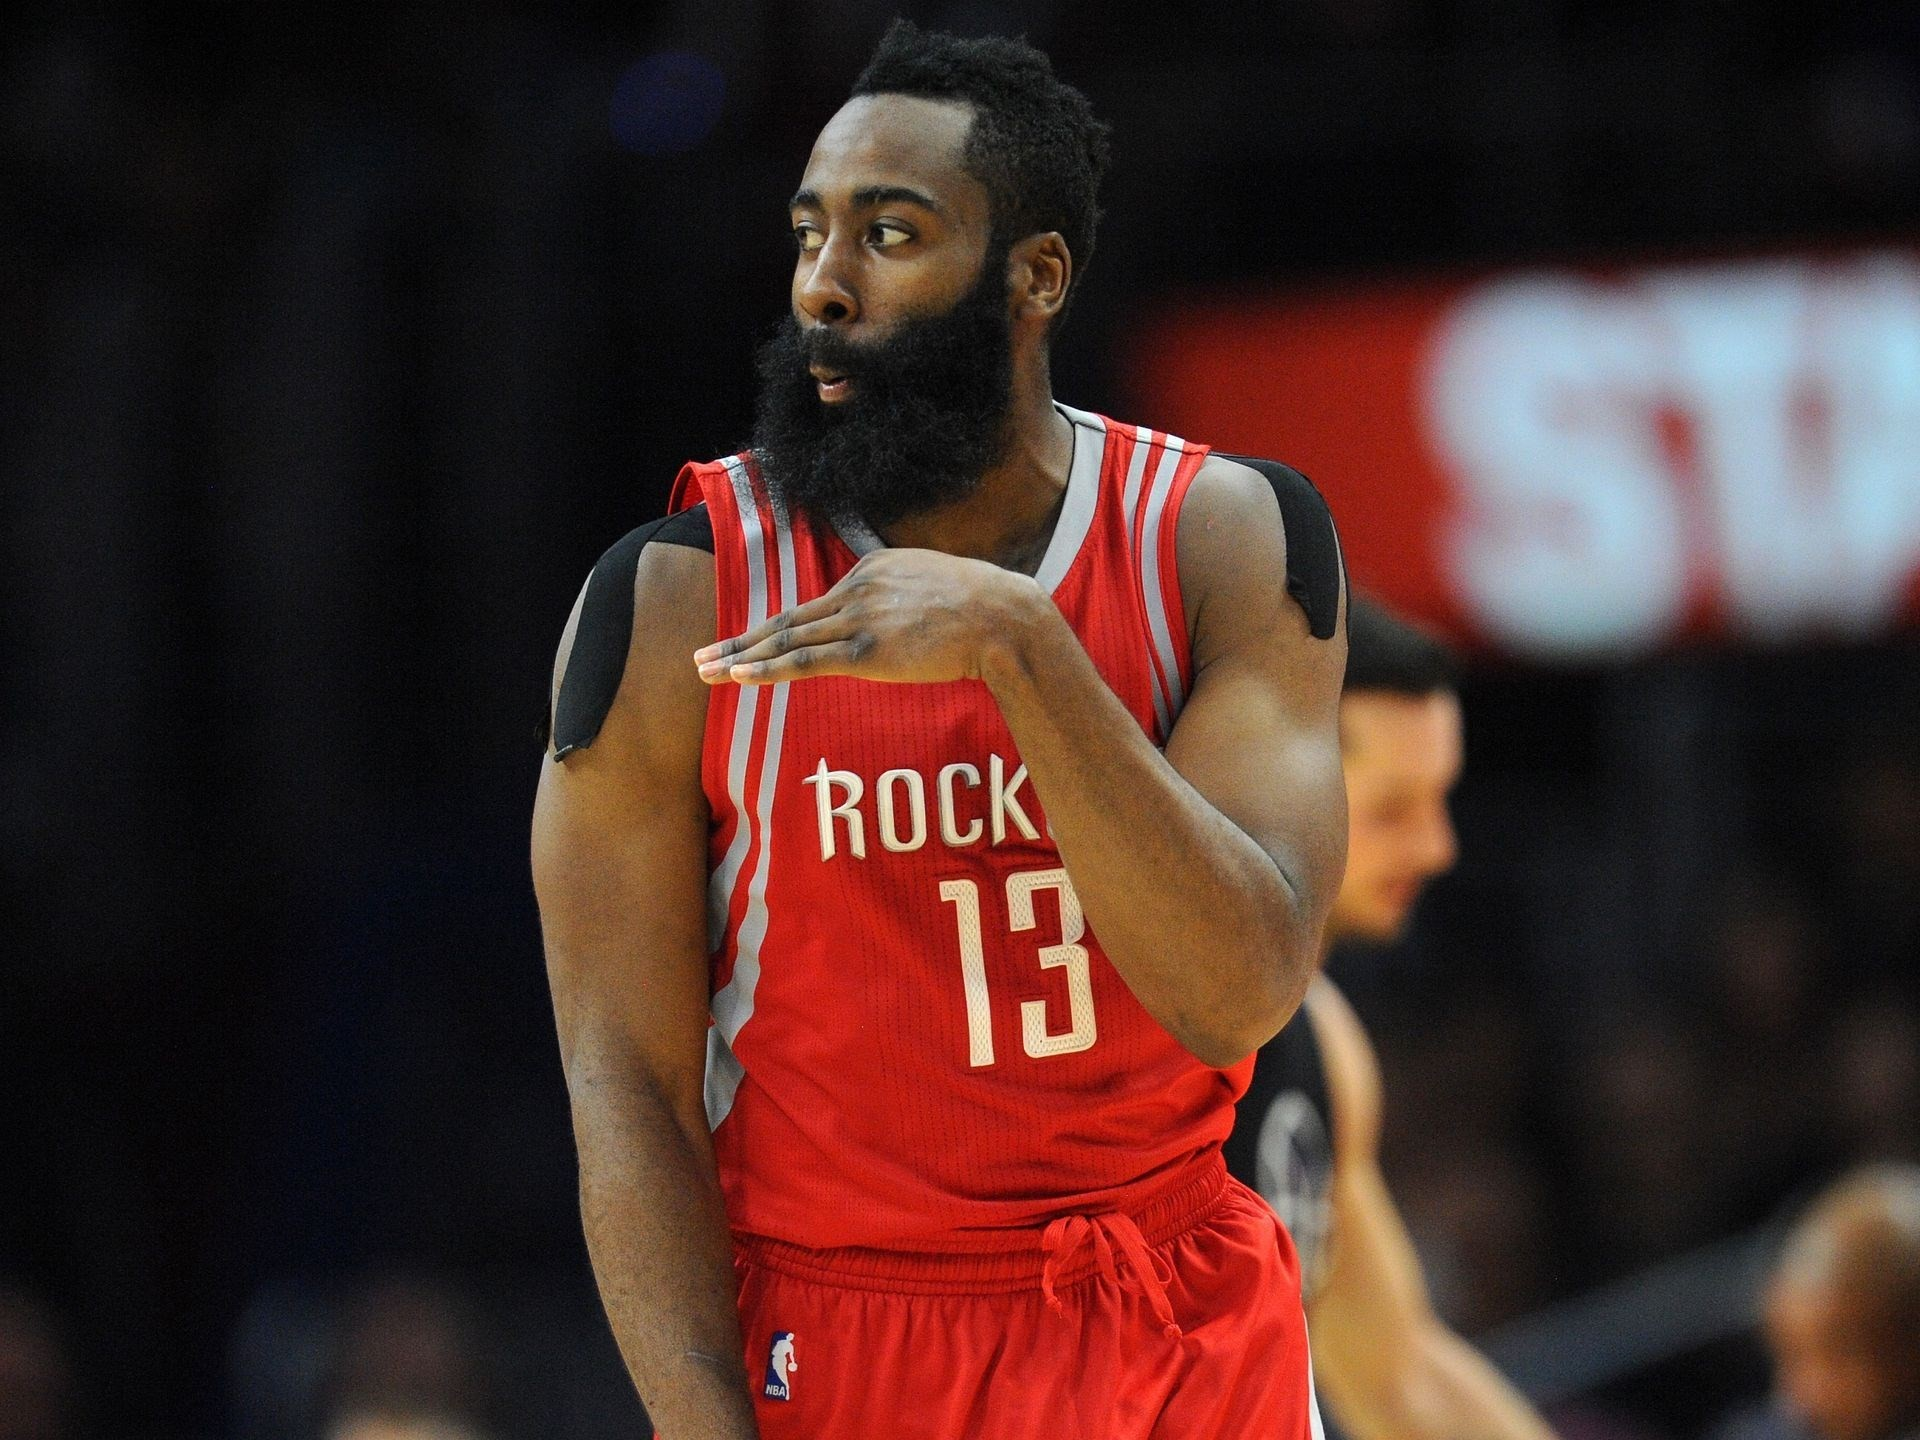 New James Harden Wallpapers Download High Quality HD Images 1920x1440